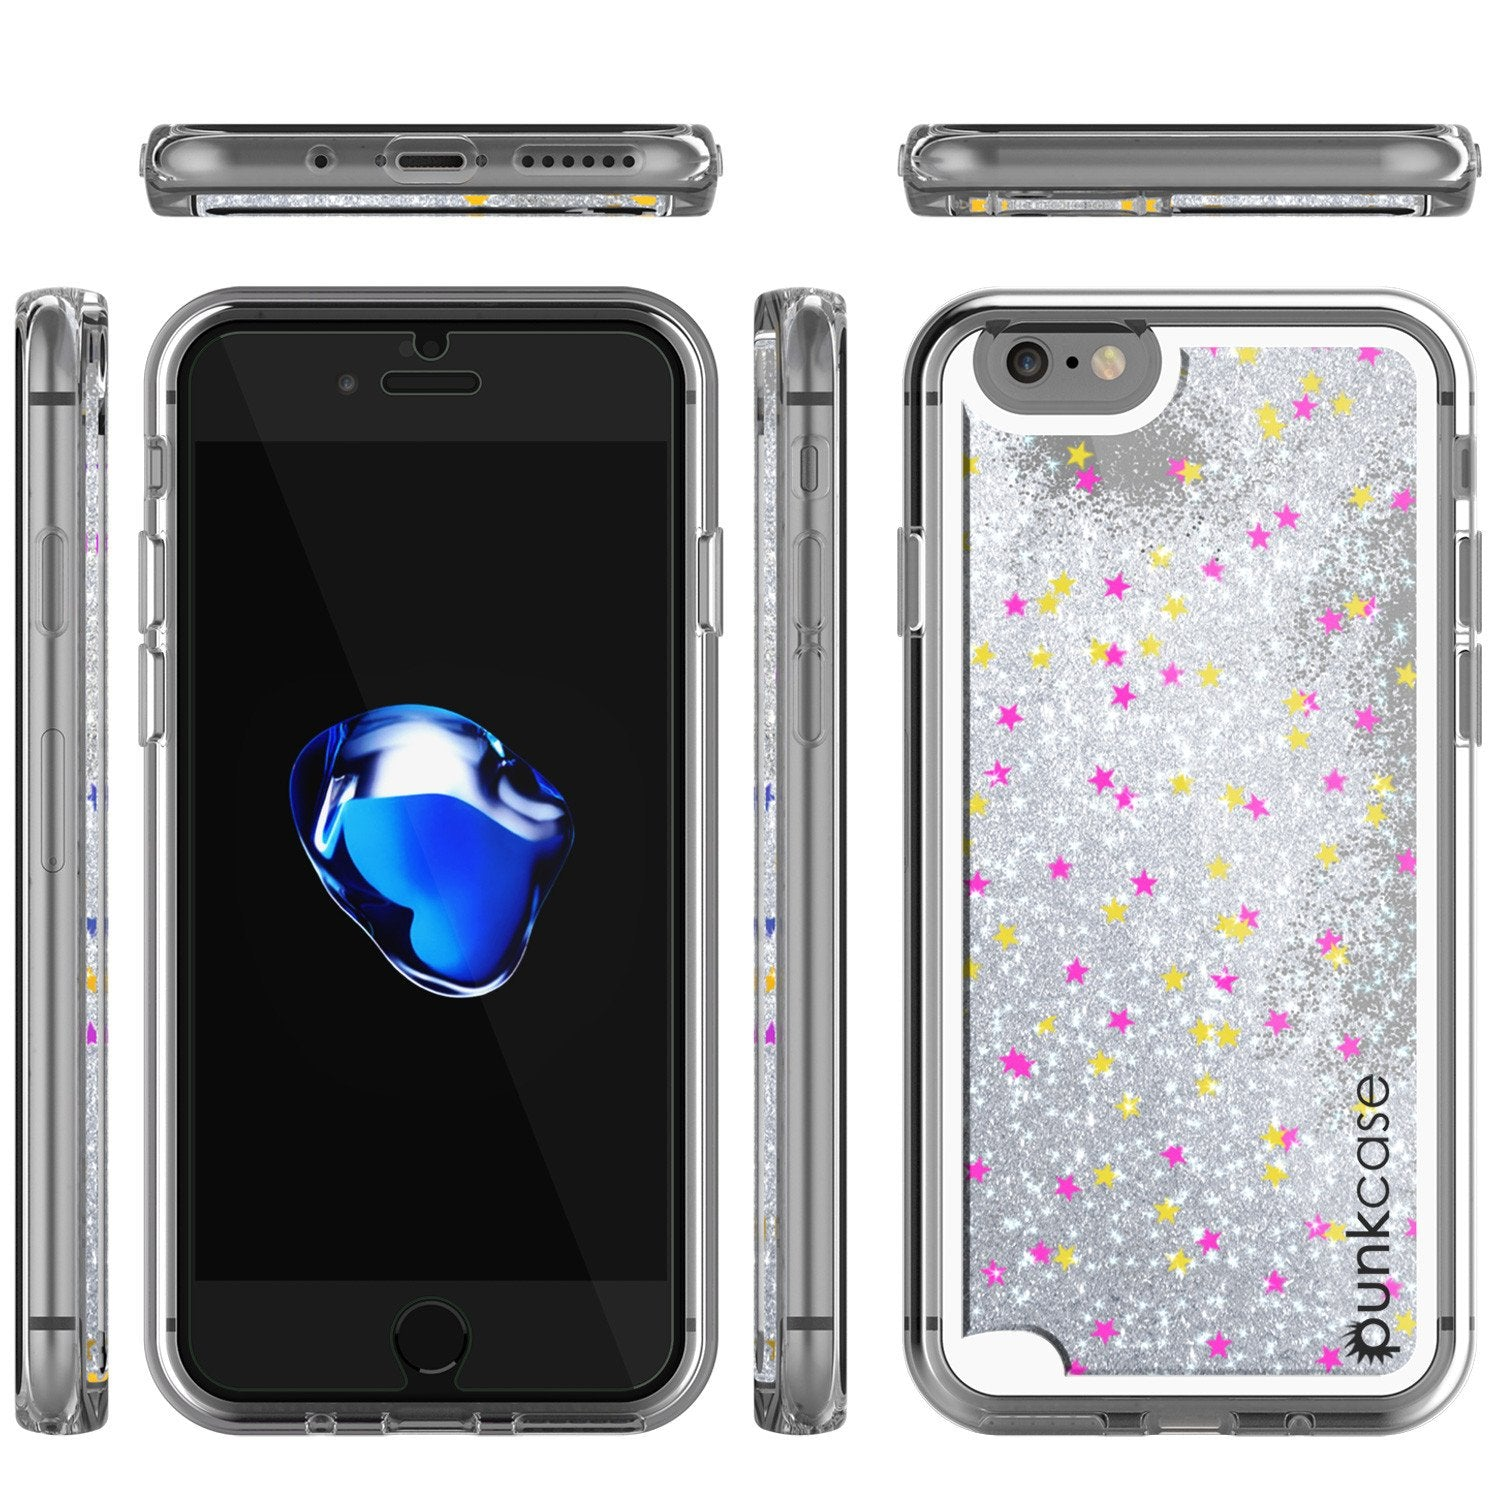 iPhone 7 Case, PunkCase LIQUID Silver Series, Protective Dual Layer Floating Glitter Cover - PunkCase NZ